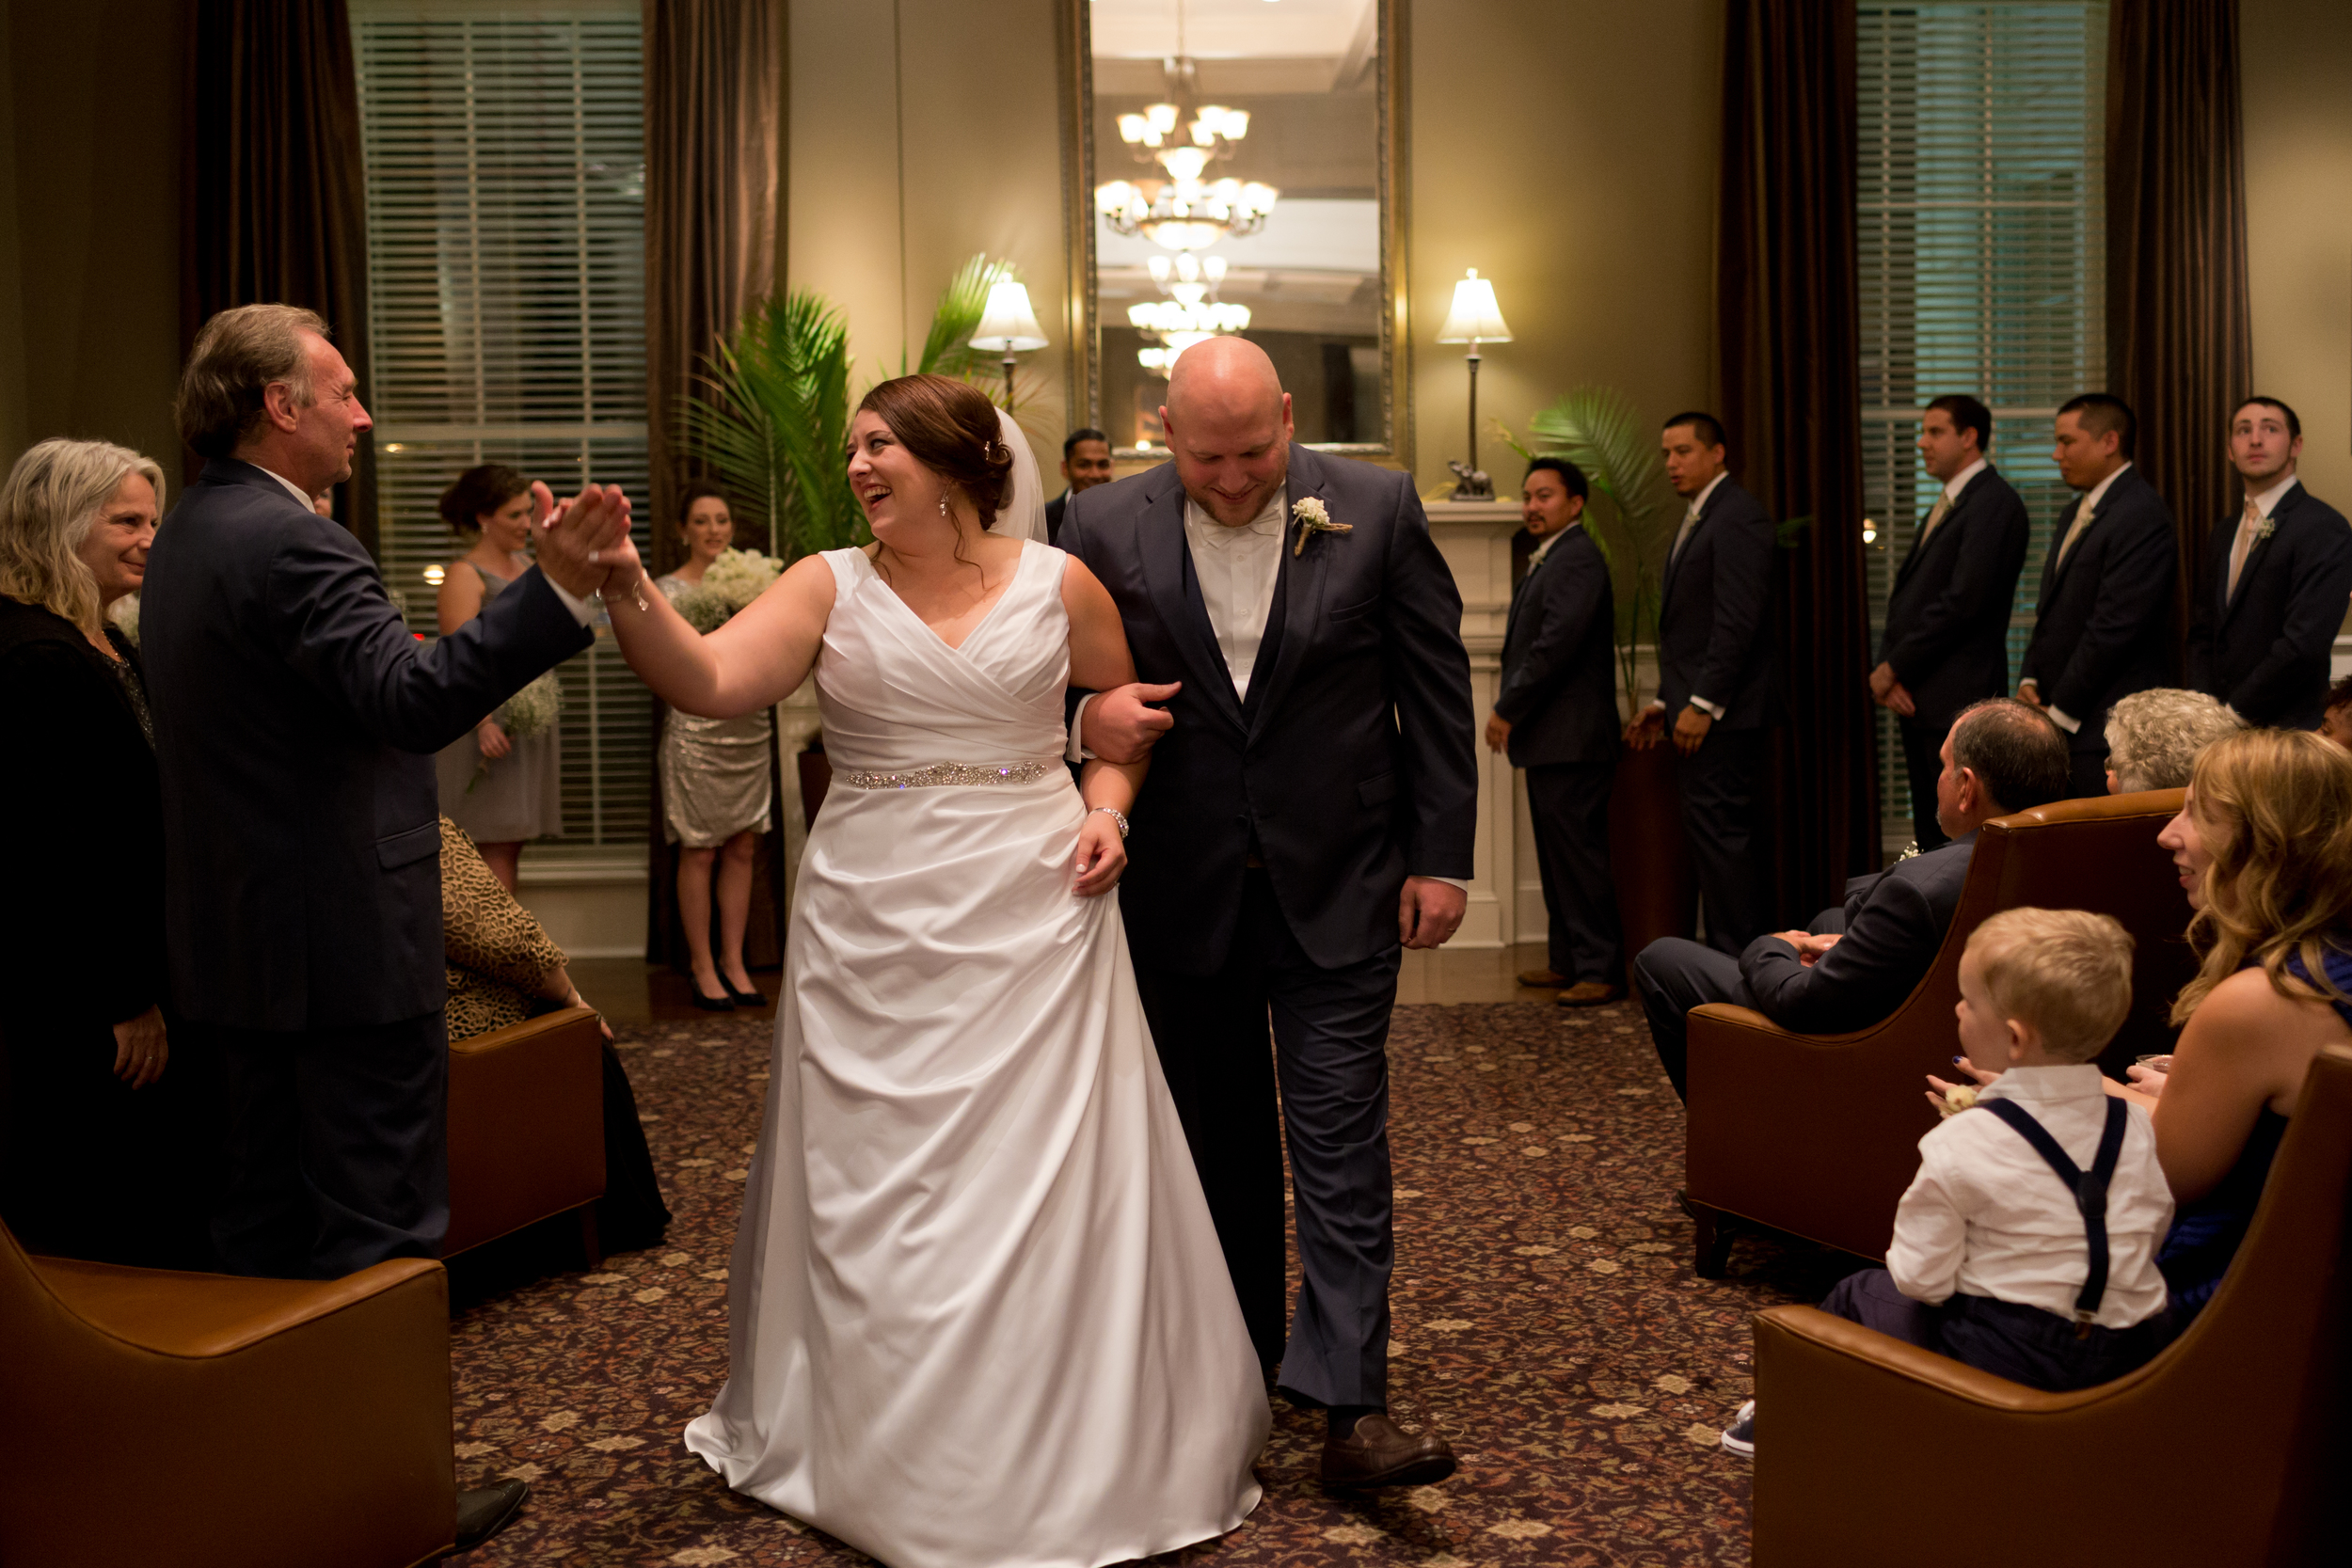 bride and father of the bride high five at end of wedding ceremony